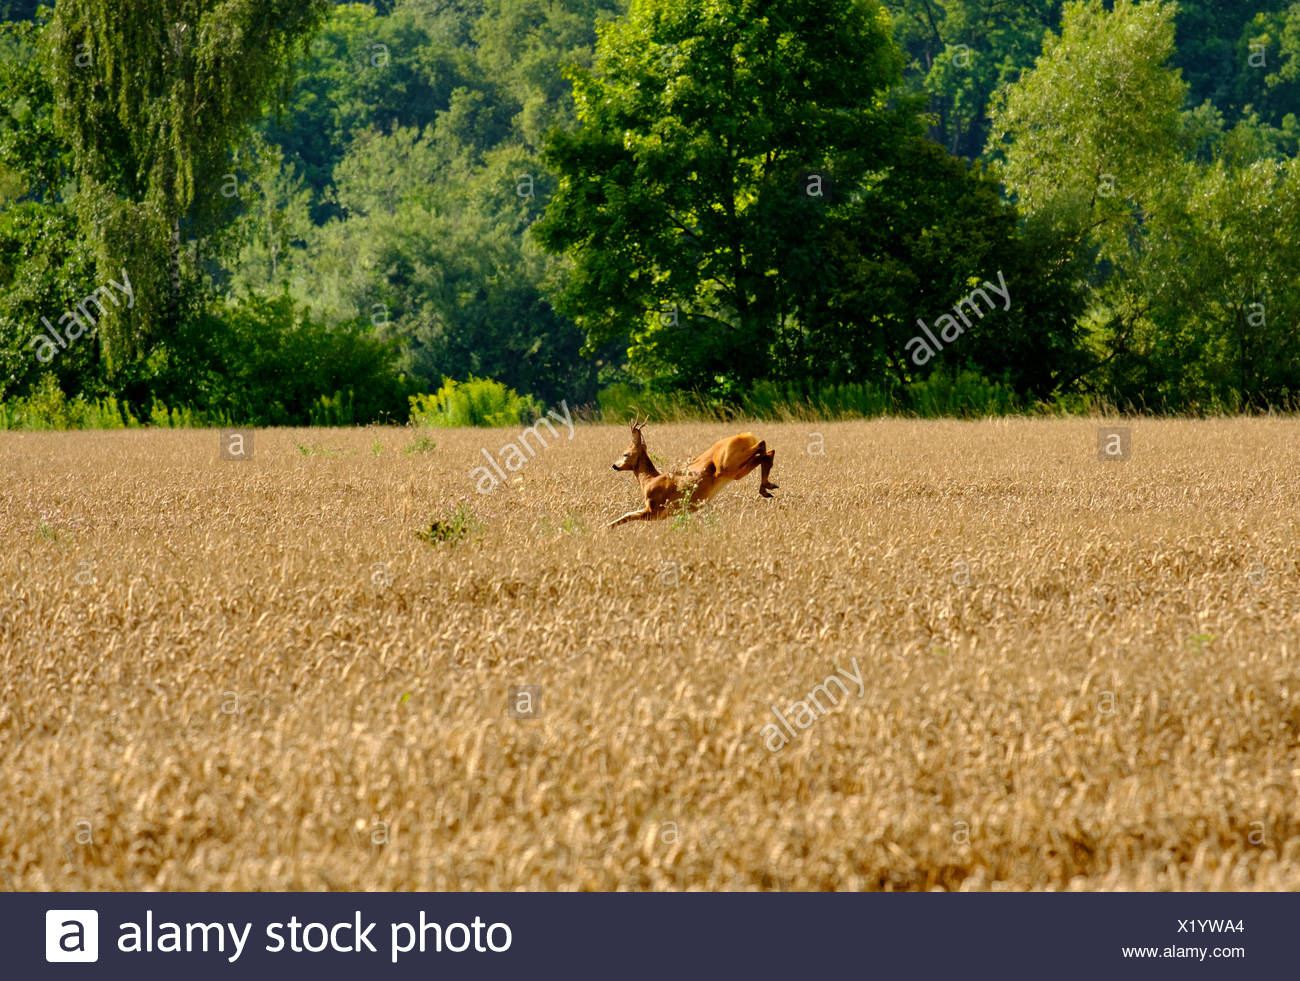 Deer jumps in the grain field, Donaustauf, Upper Palatinate, Bavaria, Germany - Stock Image